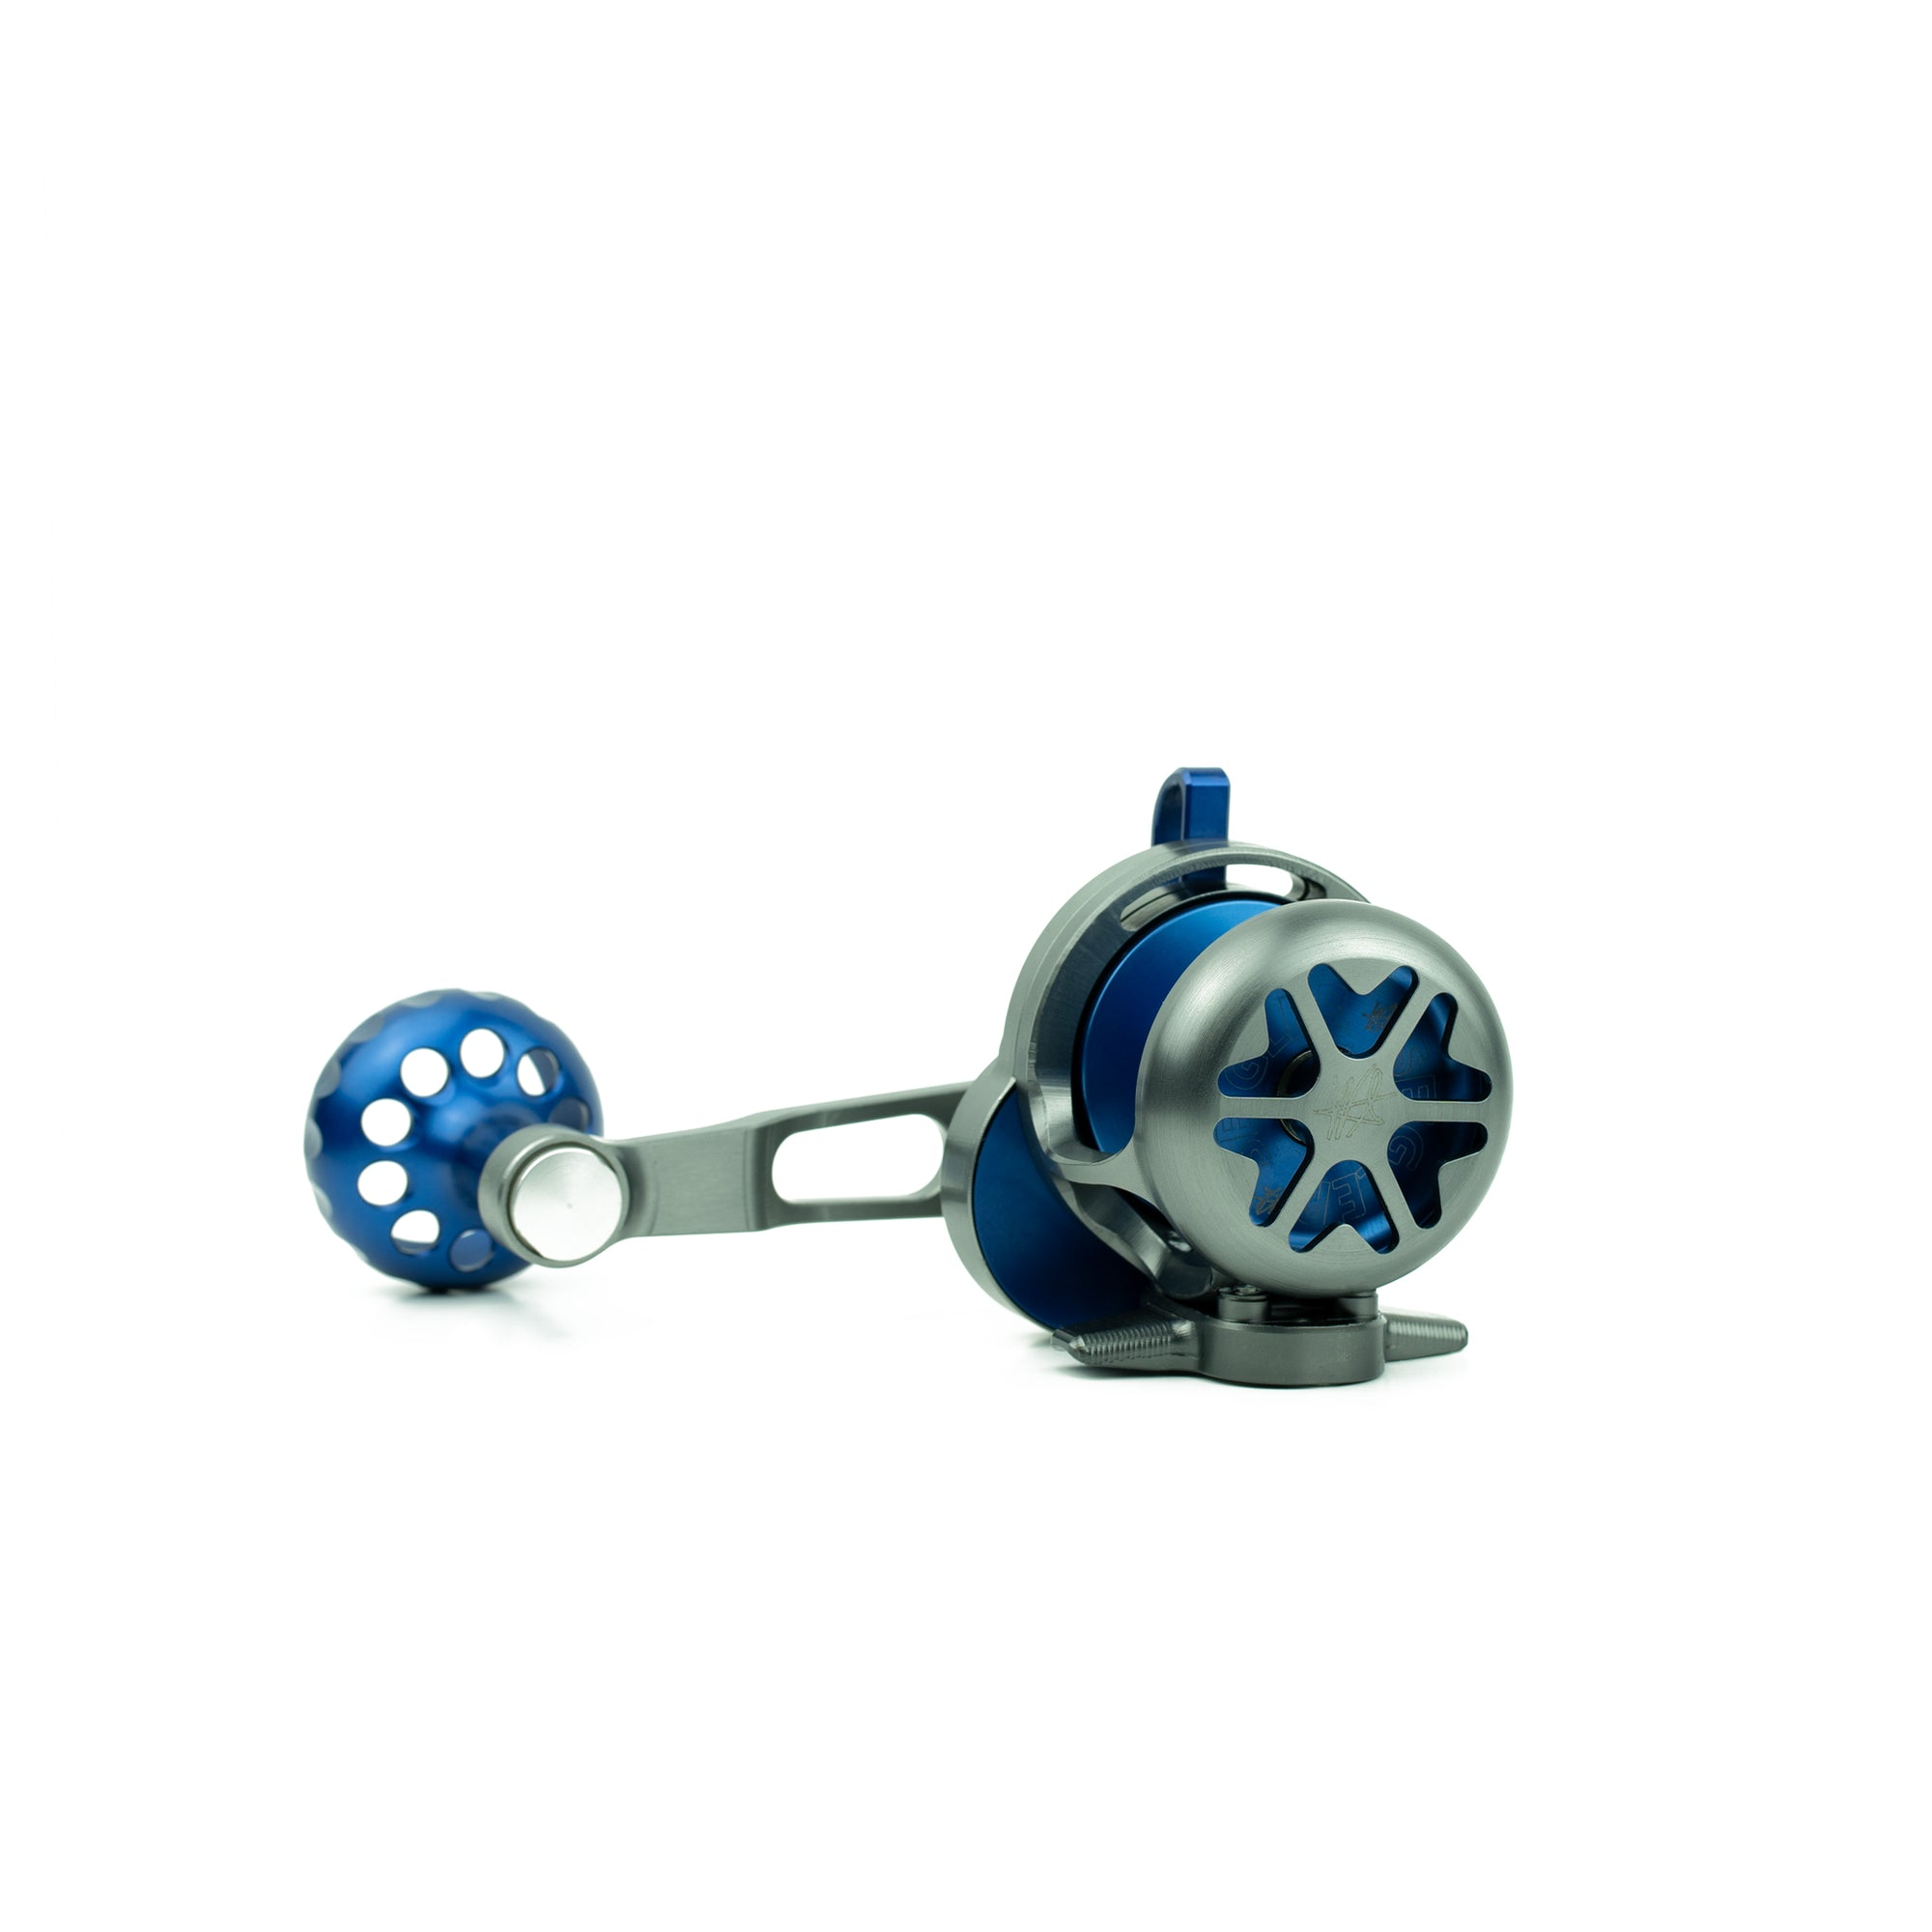 Seigler SGN Signature Custom Lever Drag fishing reel with cut outs to save weight.